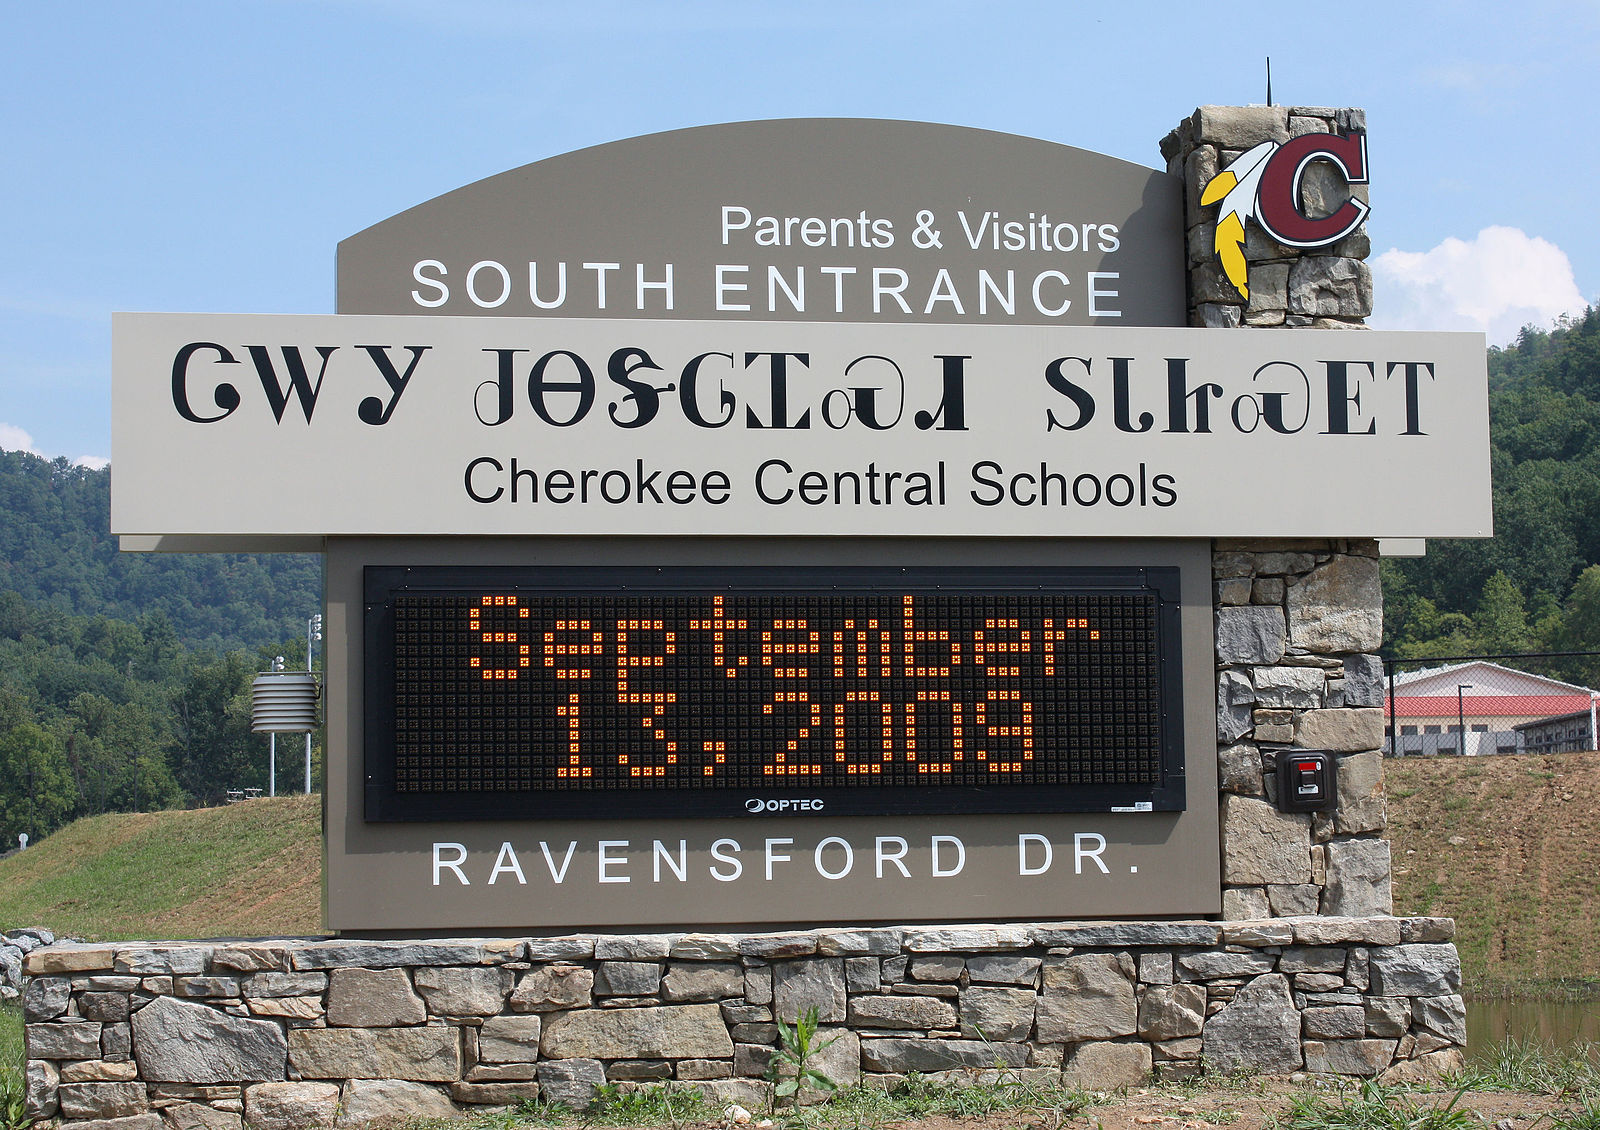 Cherokee Central Schools entrance sign written in both Cherokee and English